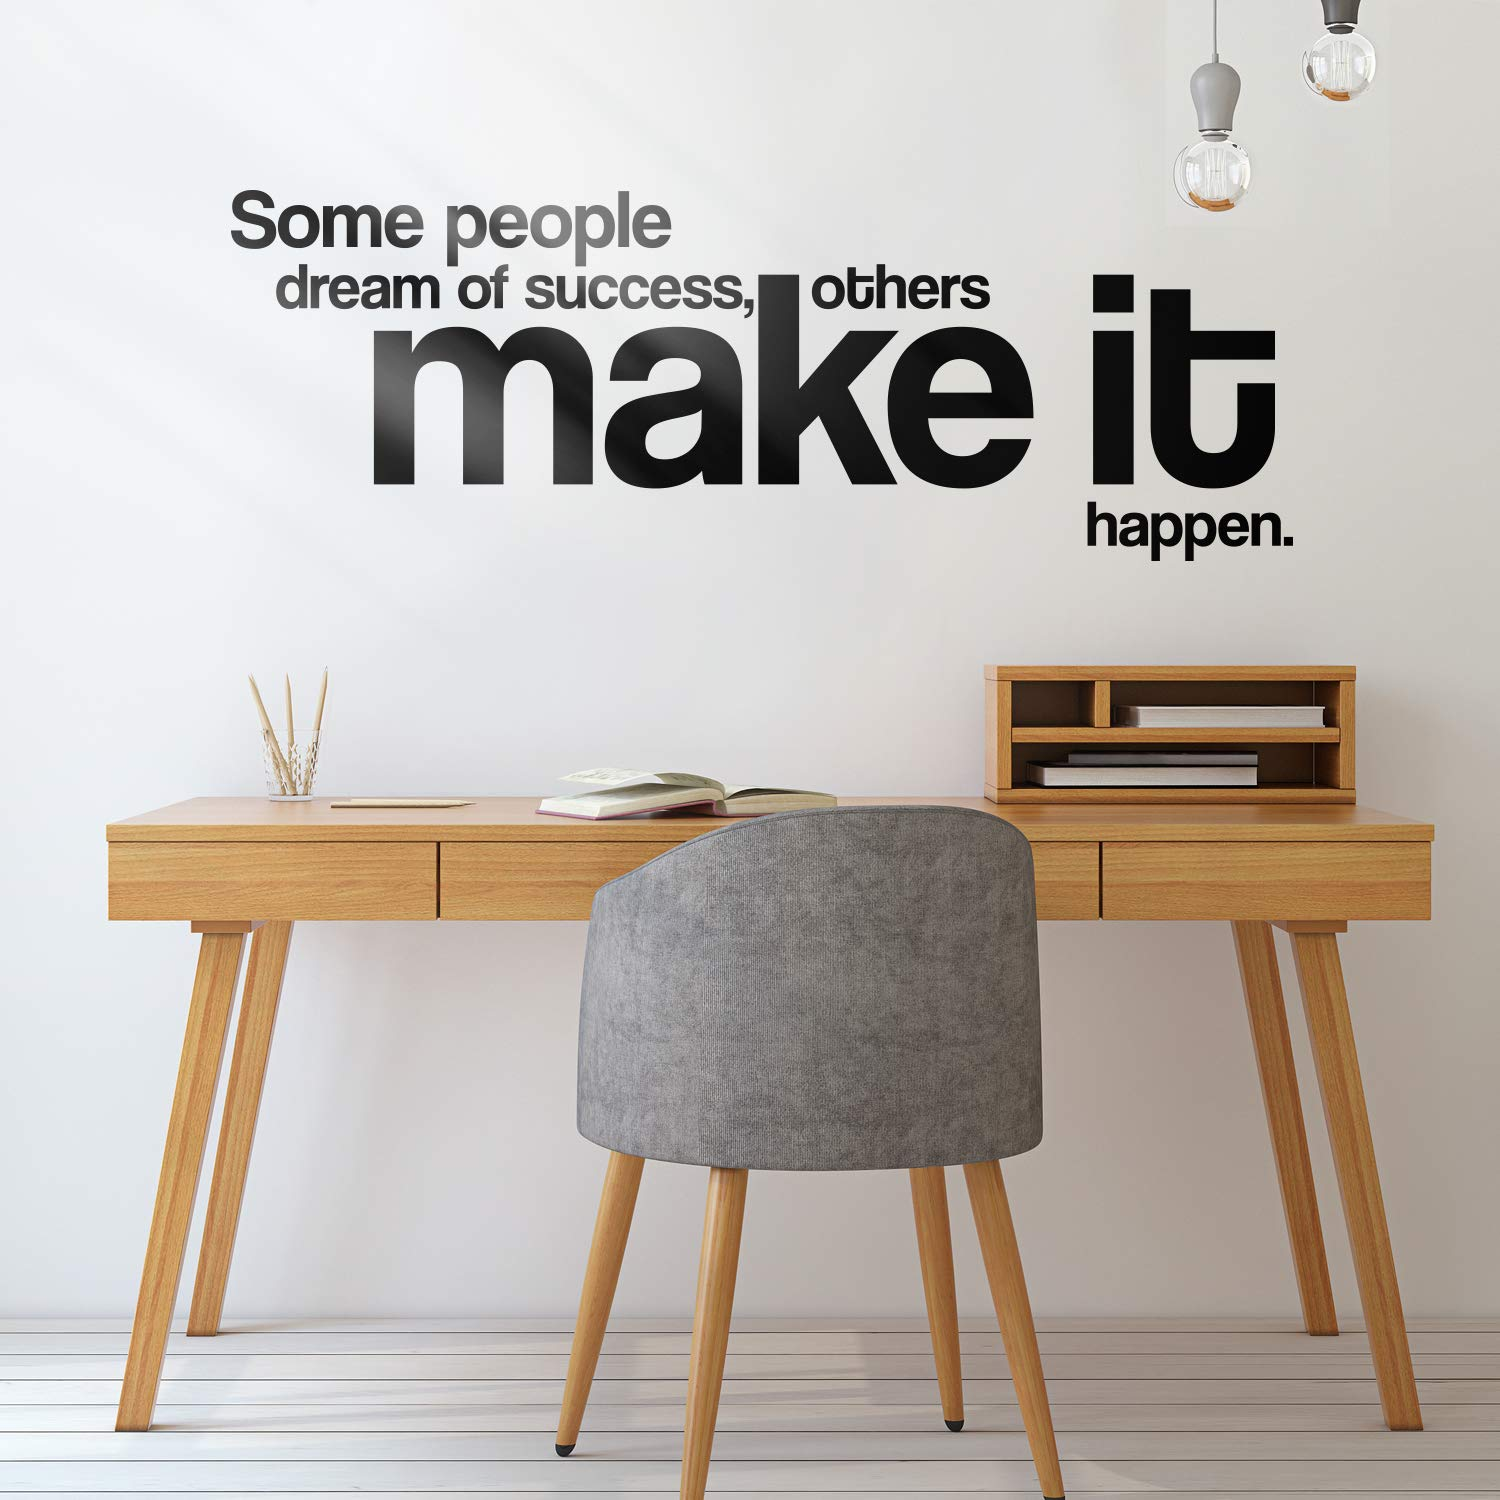 Positive Quotes Dream Of Success Make It Happen Quotes Wall Sticker For Living Room Bedroom Decoration Office Wall Sticker